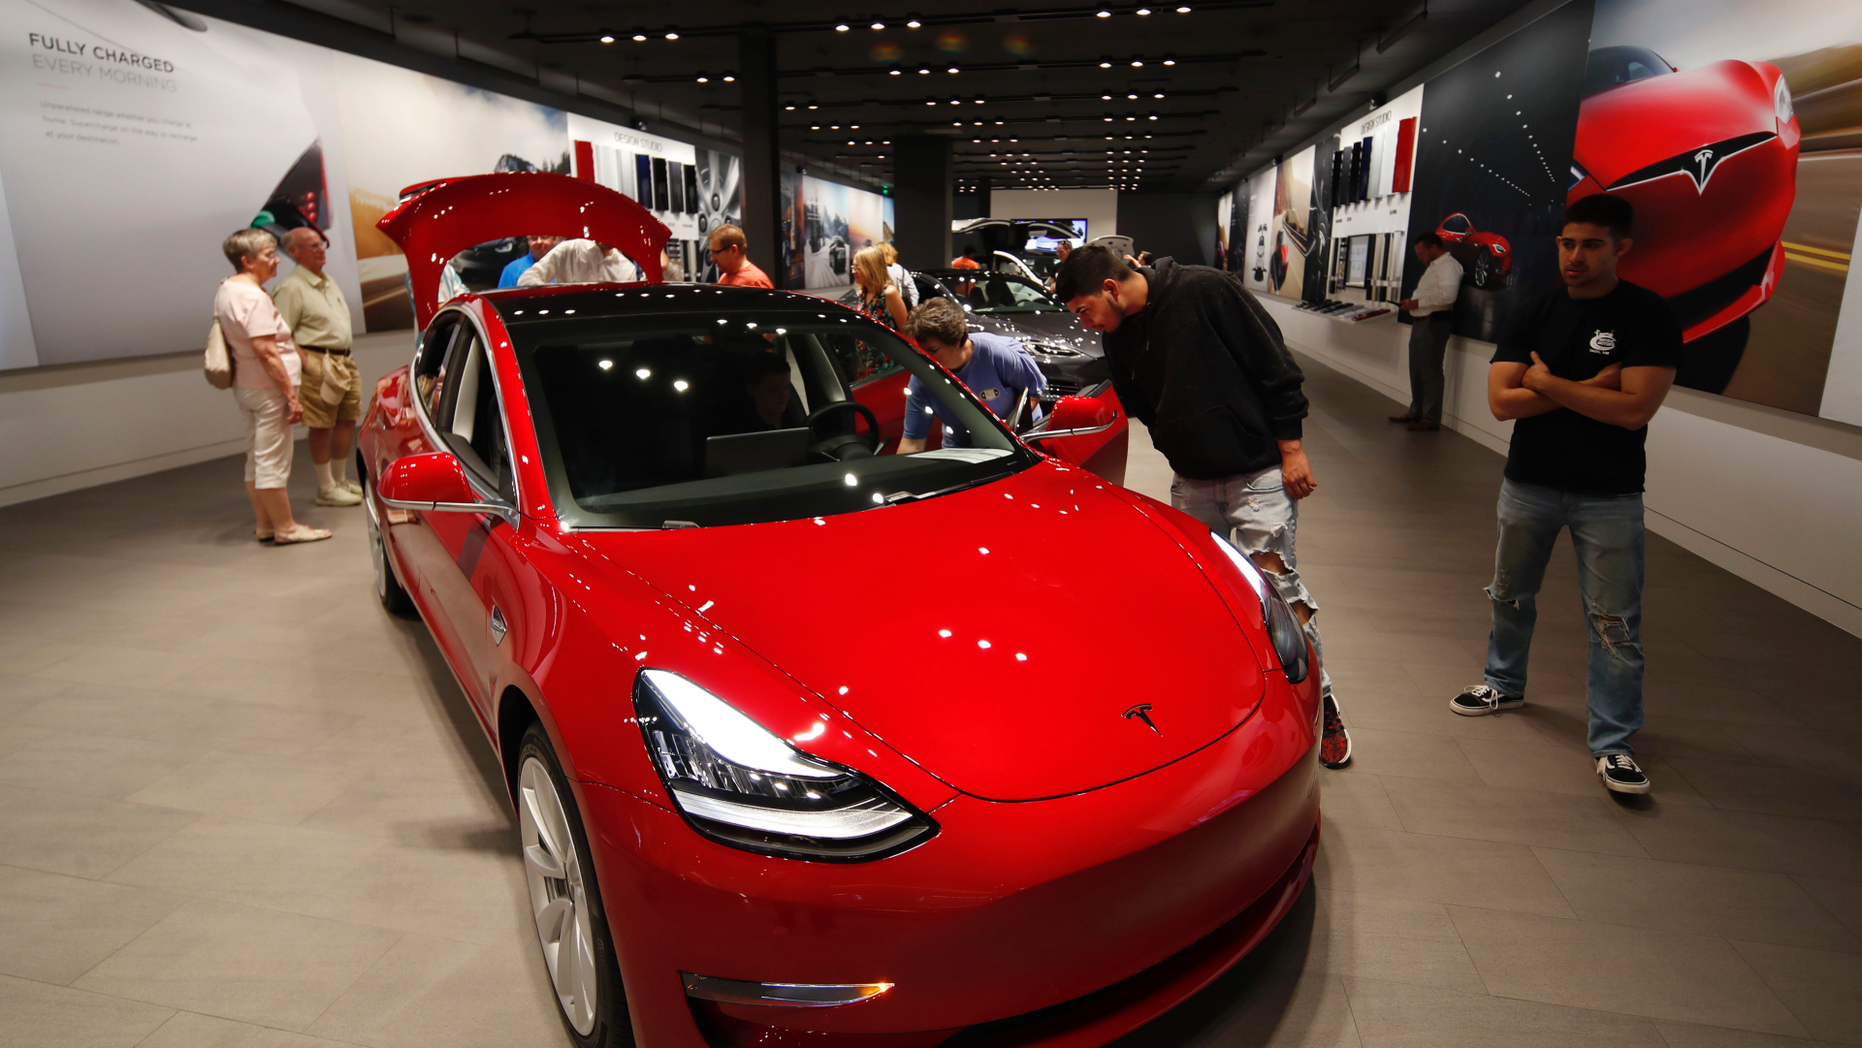 Tesla to Raise Prices, Close Fewer Stores Than Flagged